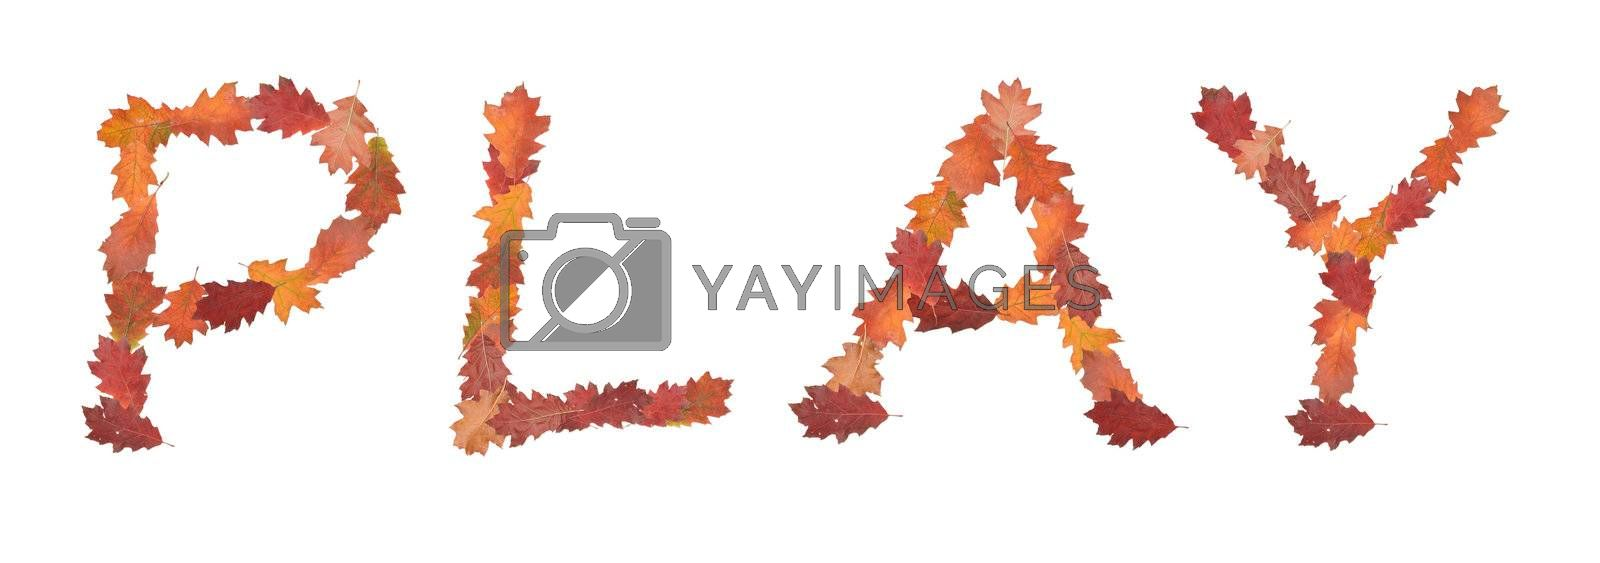 word play made of autumn leaves for game on white background